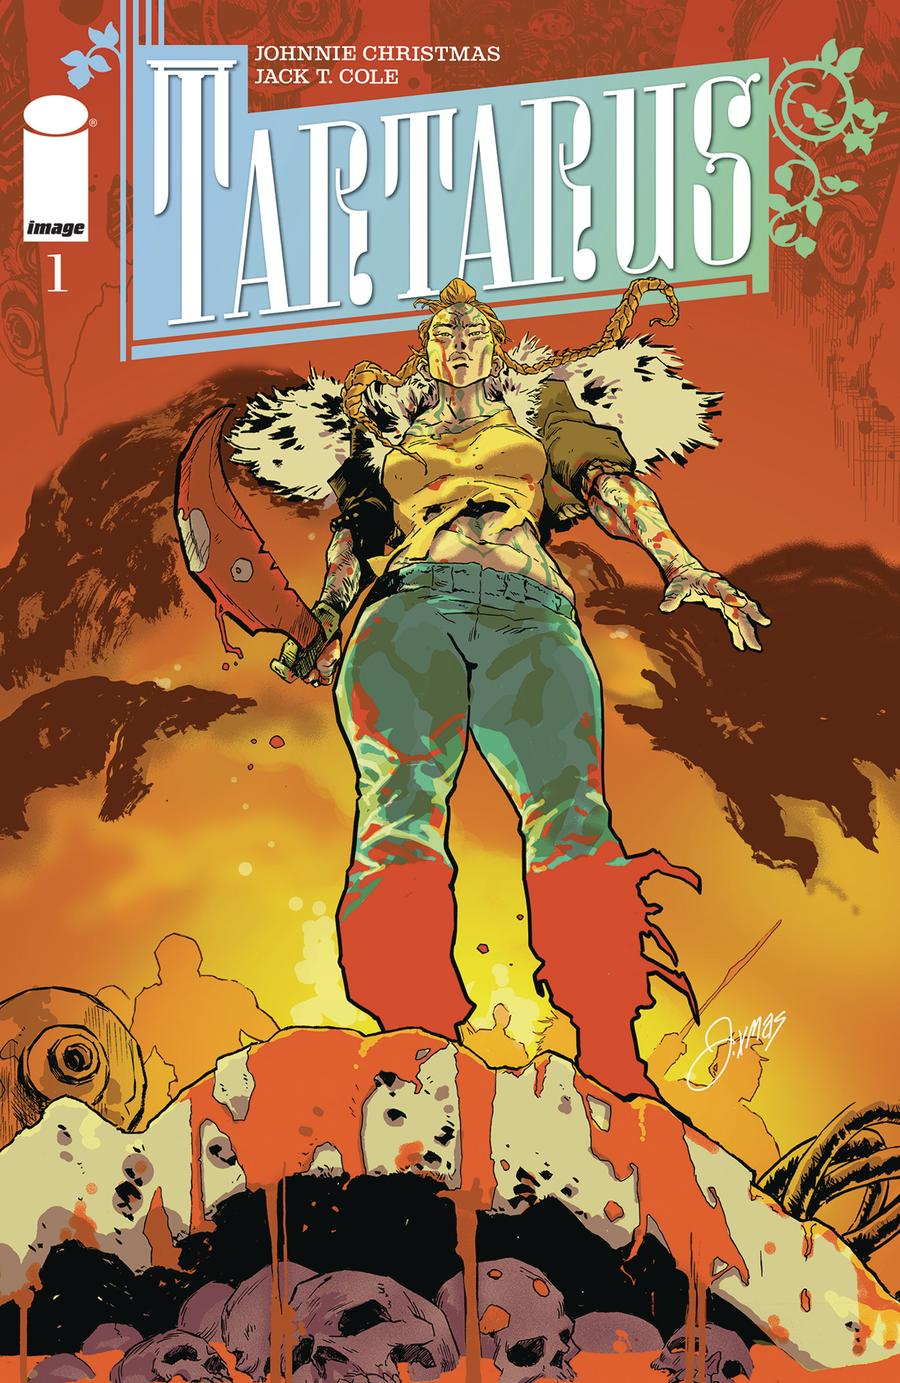 Tartarus #1 Cover B Variant Johnnie Christmas Cover